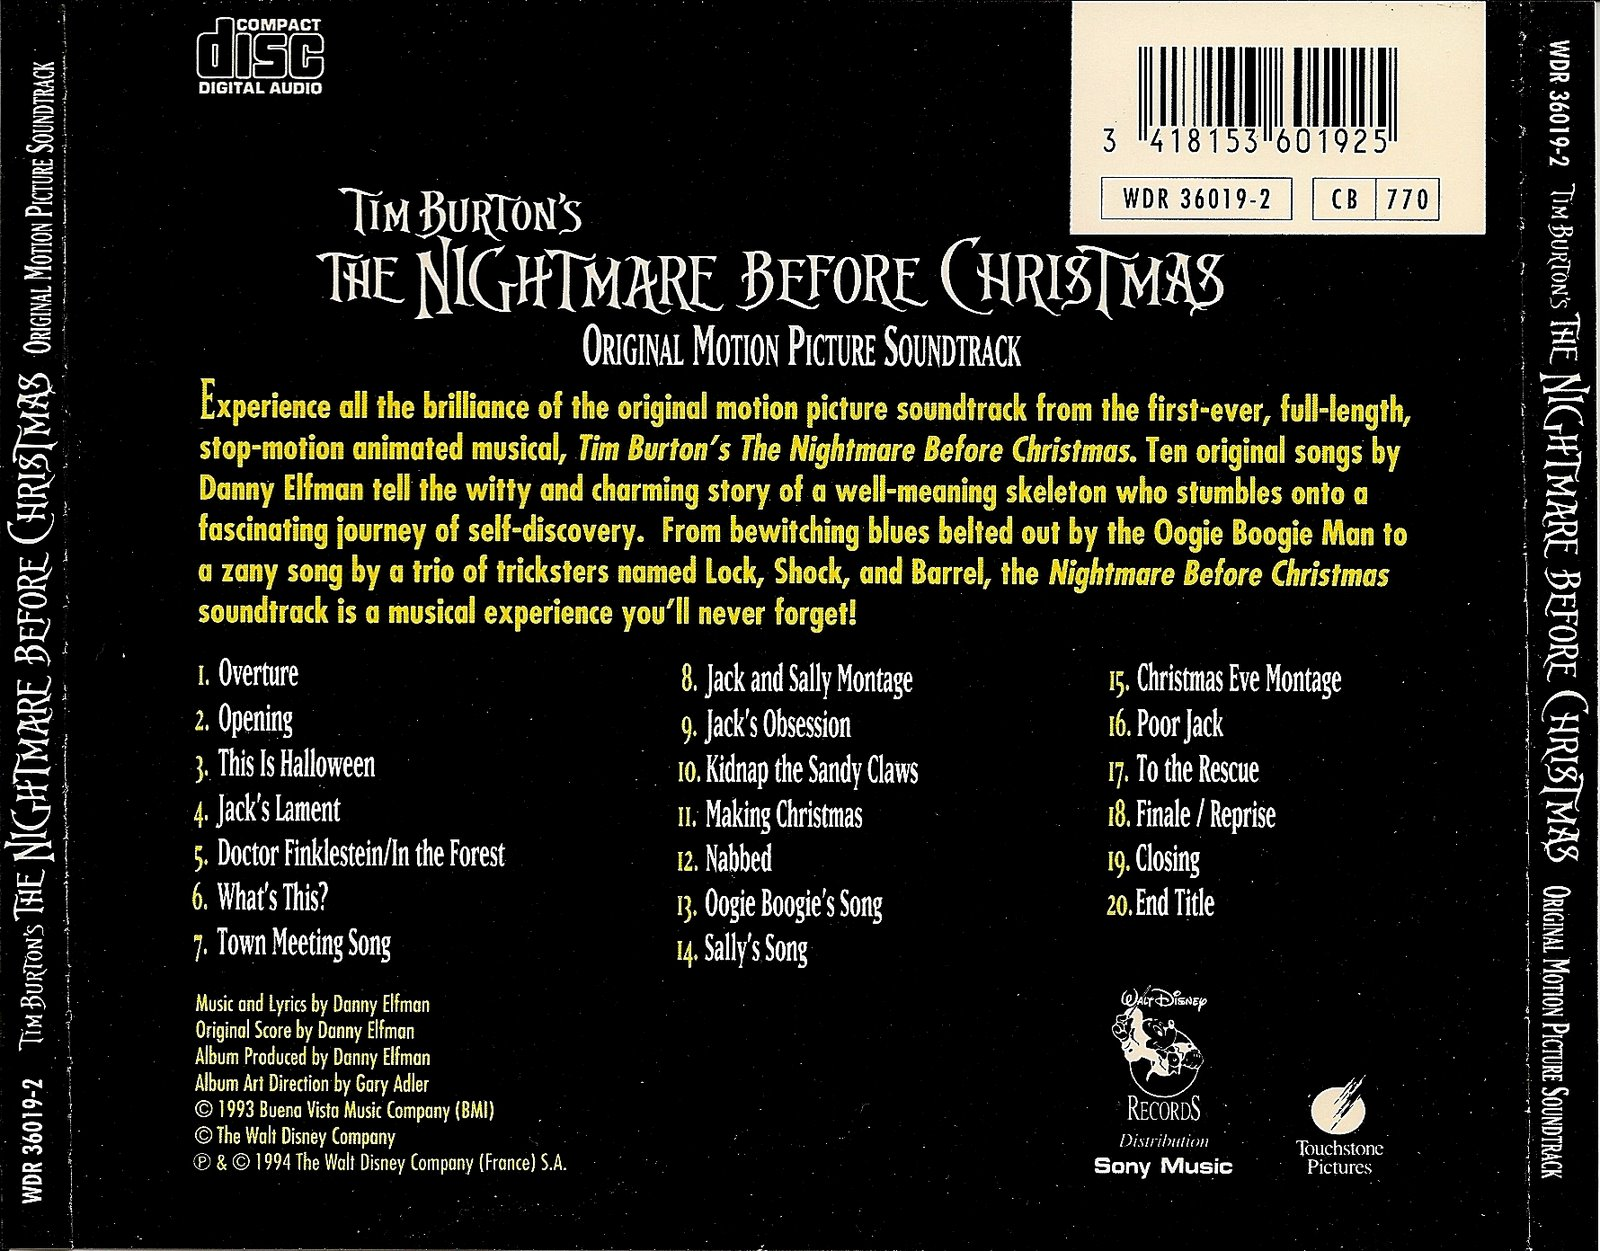 LE BLOG DE CHIEF DUNDEE: THE NIGHTMARE BEFORE CHRISTMAS - Danny Elfman